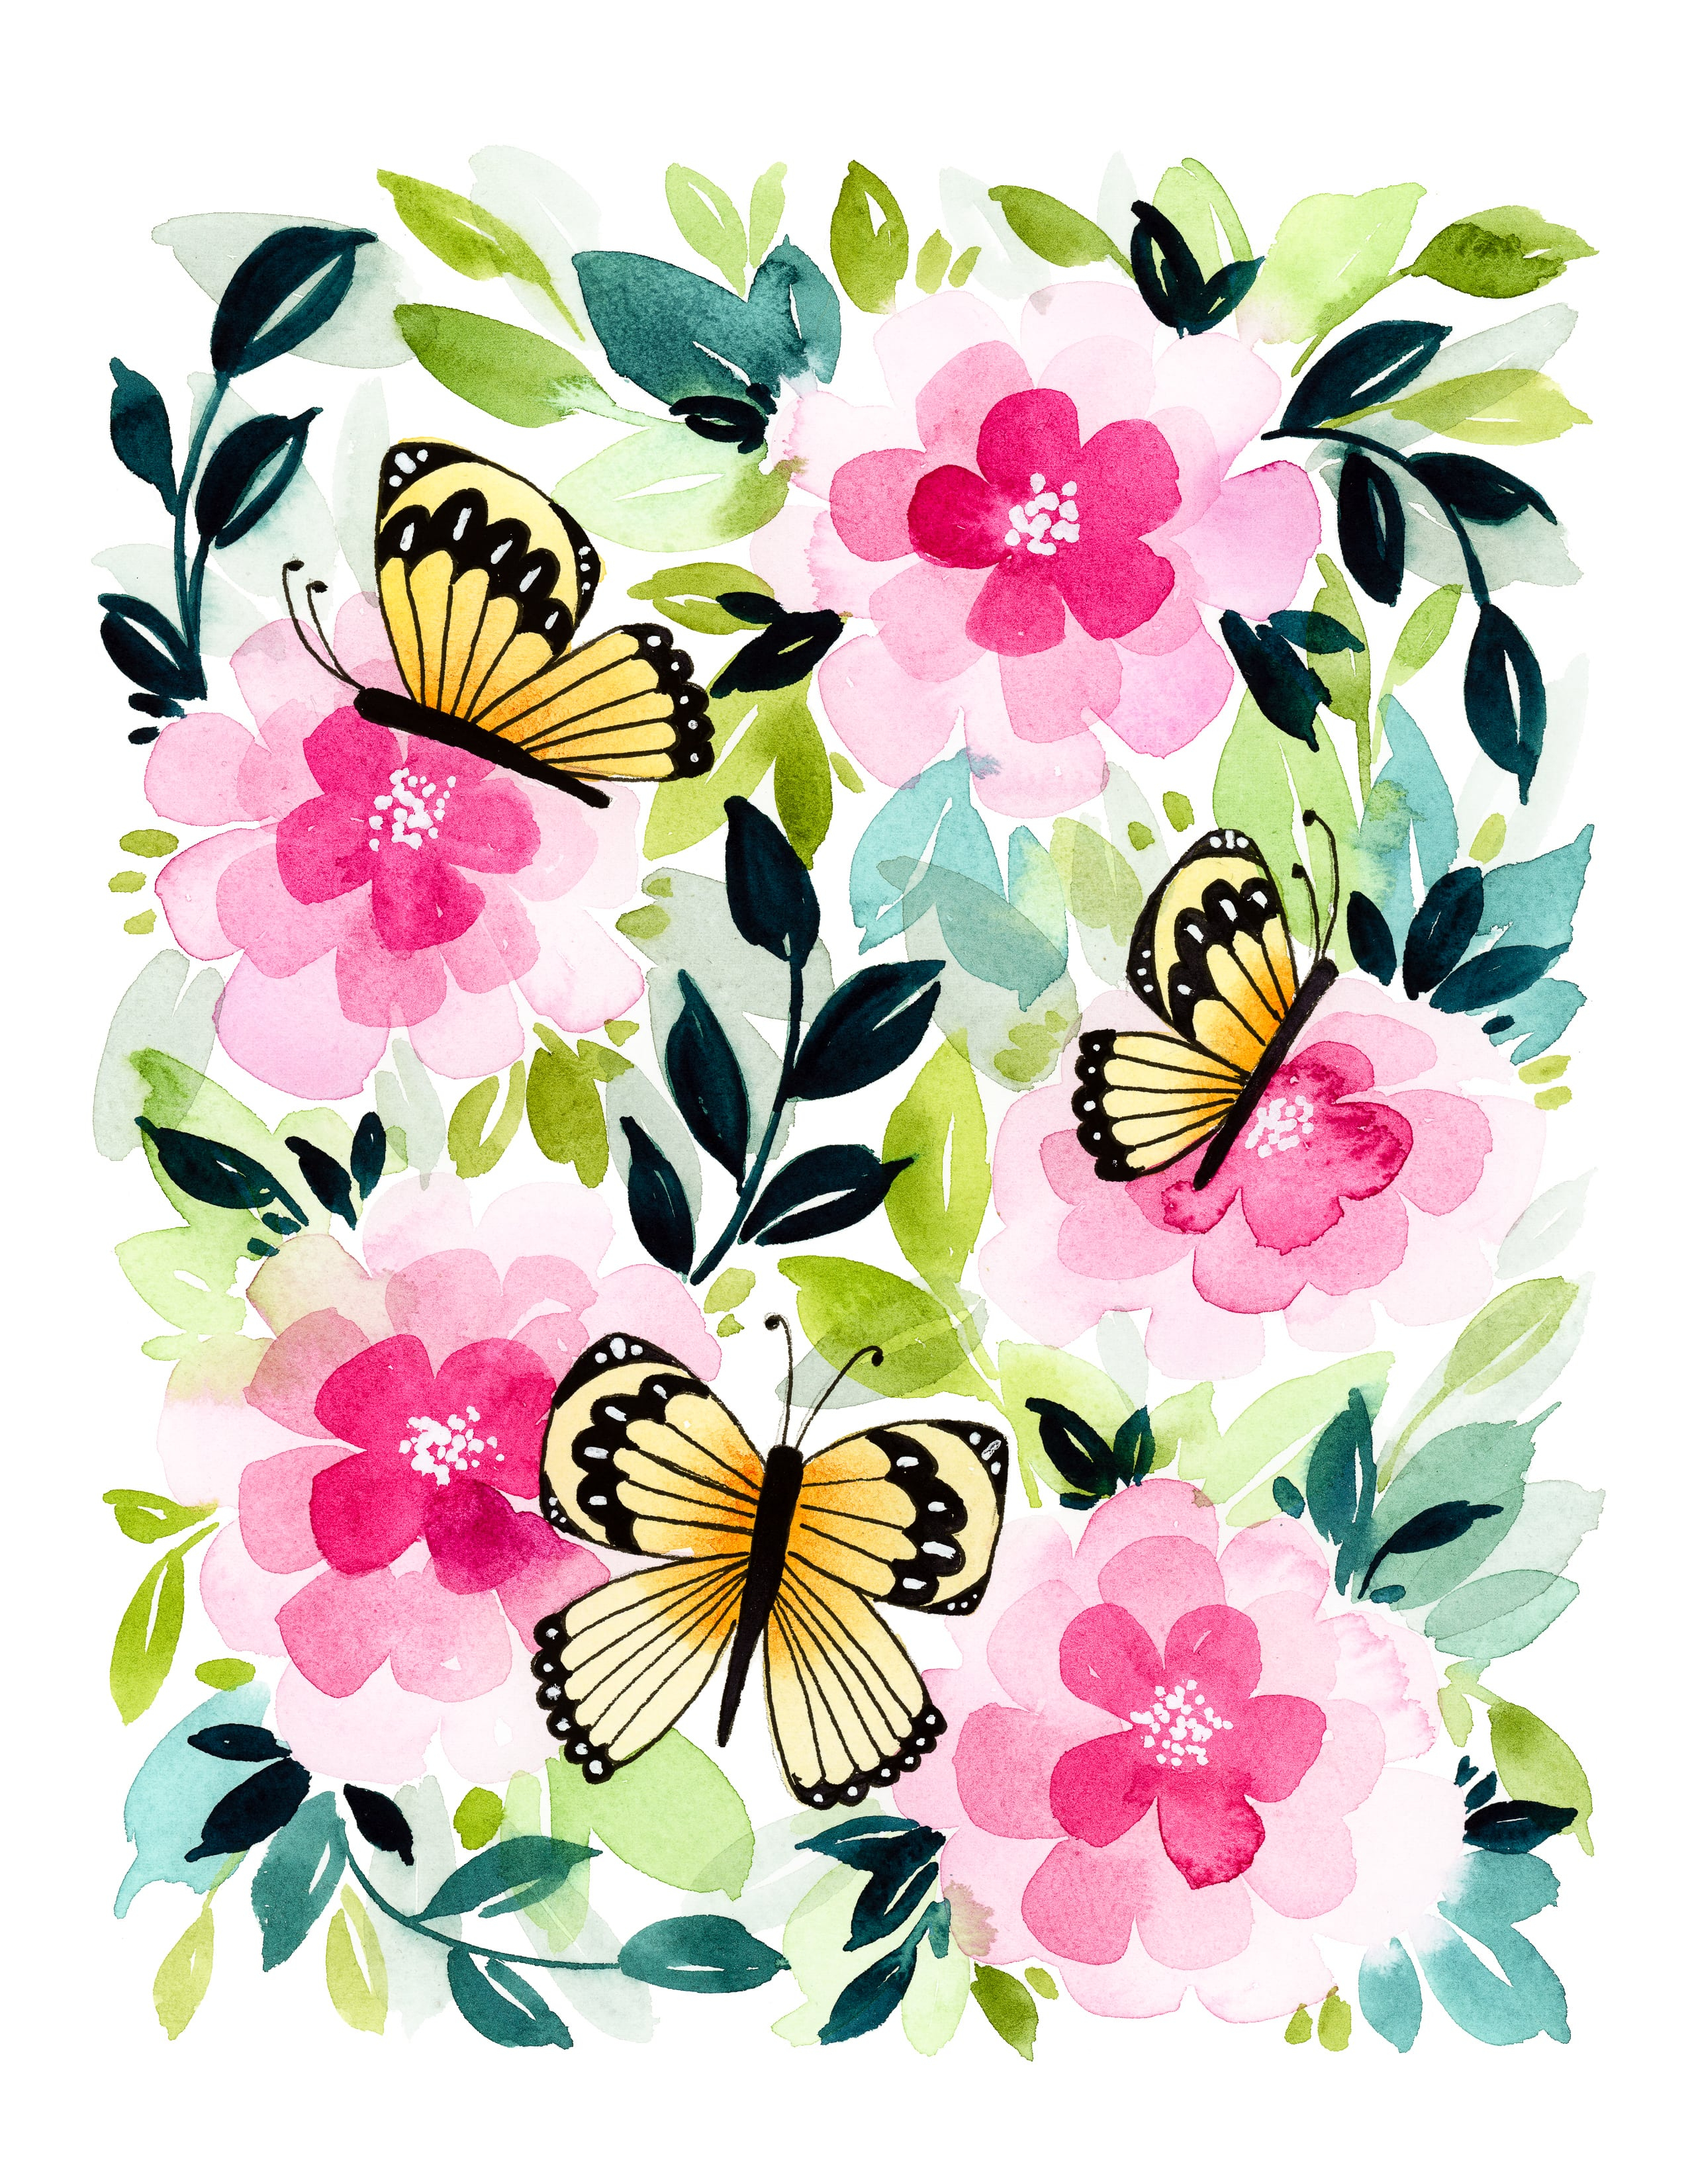 Free-Printable-Butterfly-Garden-Card-1 - Tinselbox - Free Printable Butterfly Pictures